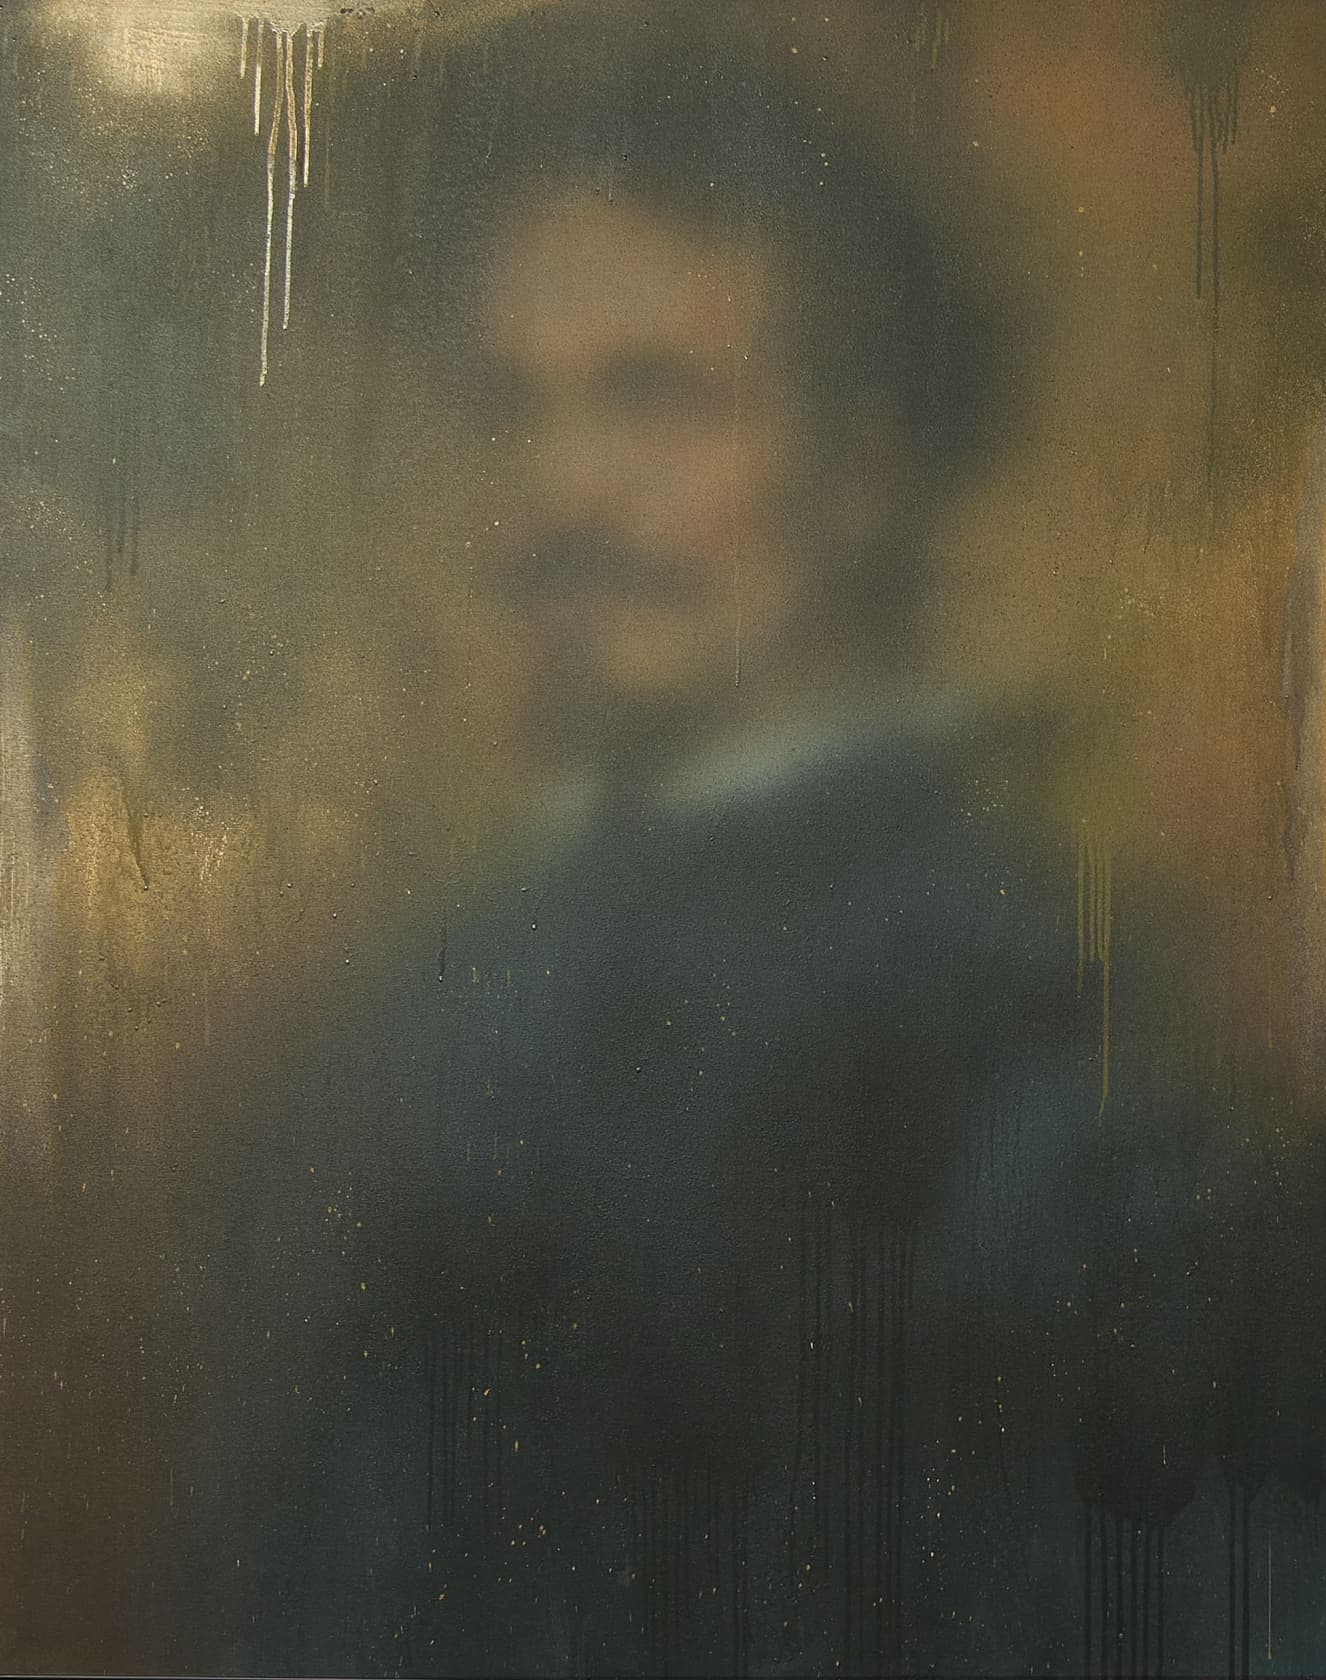 Miaz Brothers Portrait of a Nobleman Acrylic and Spray Paint on Canvas